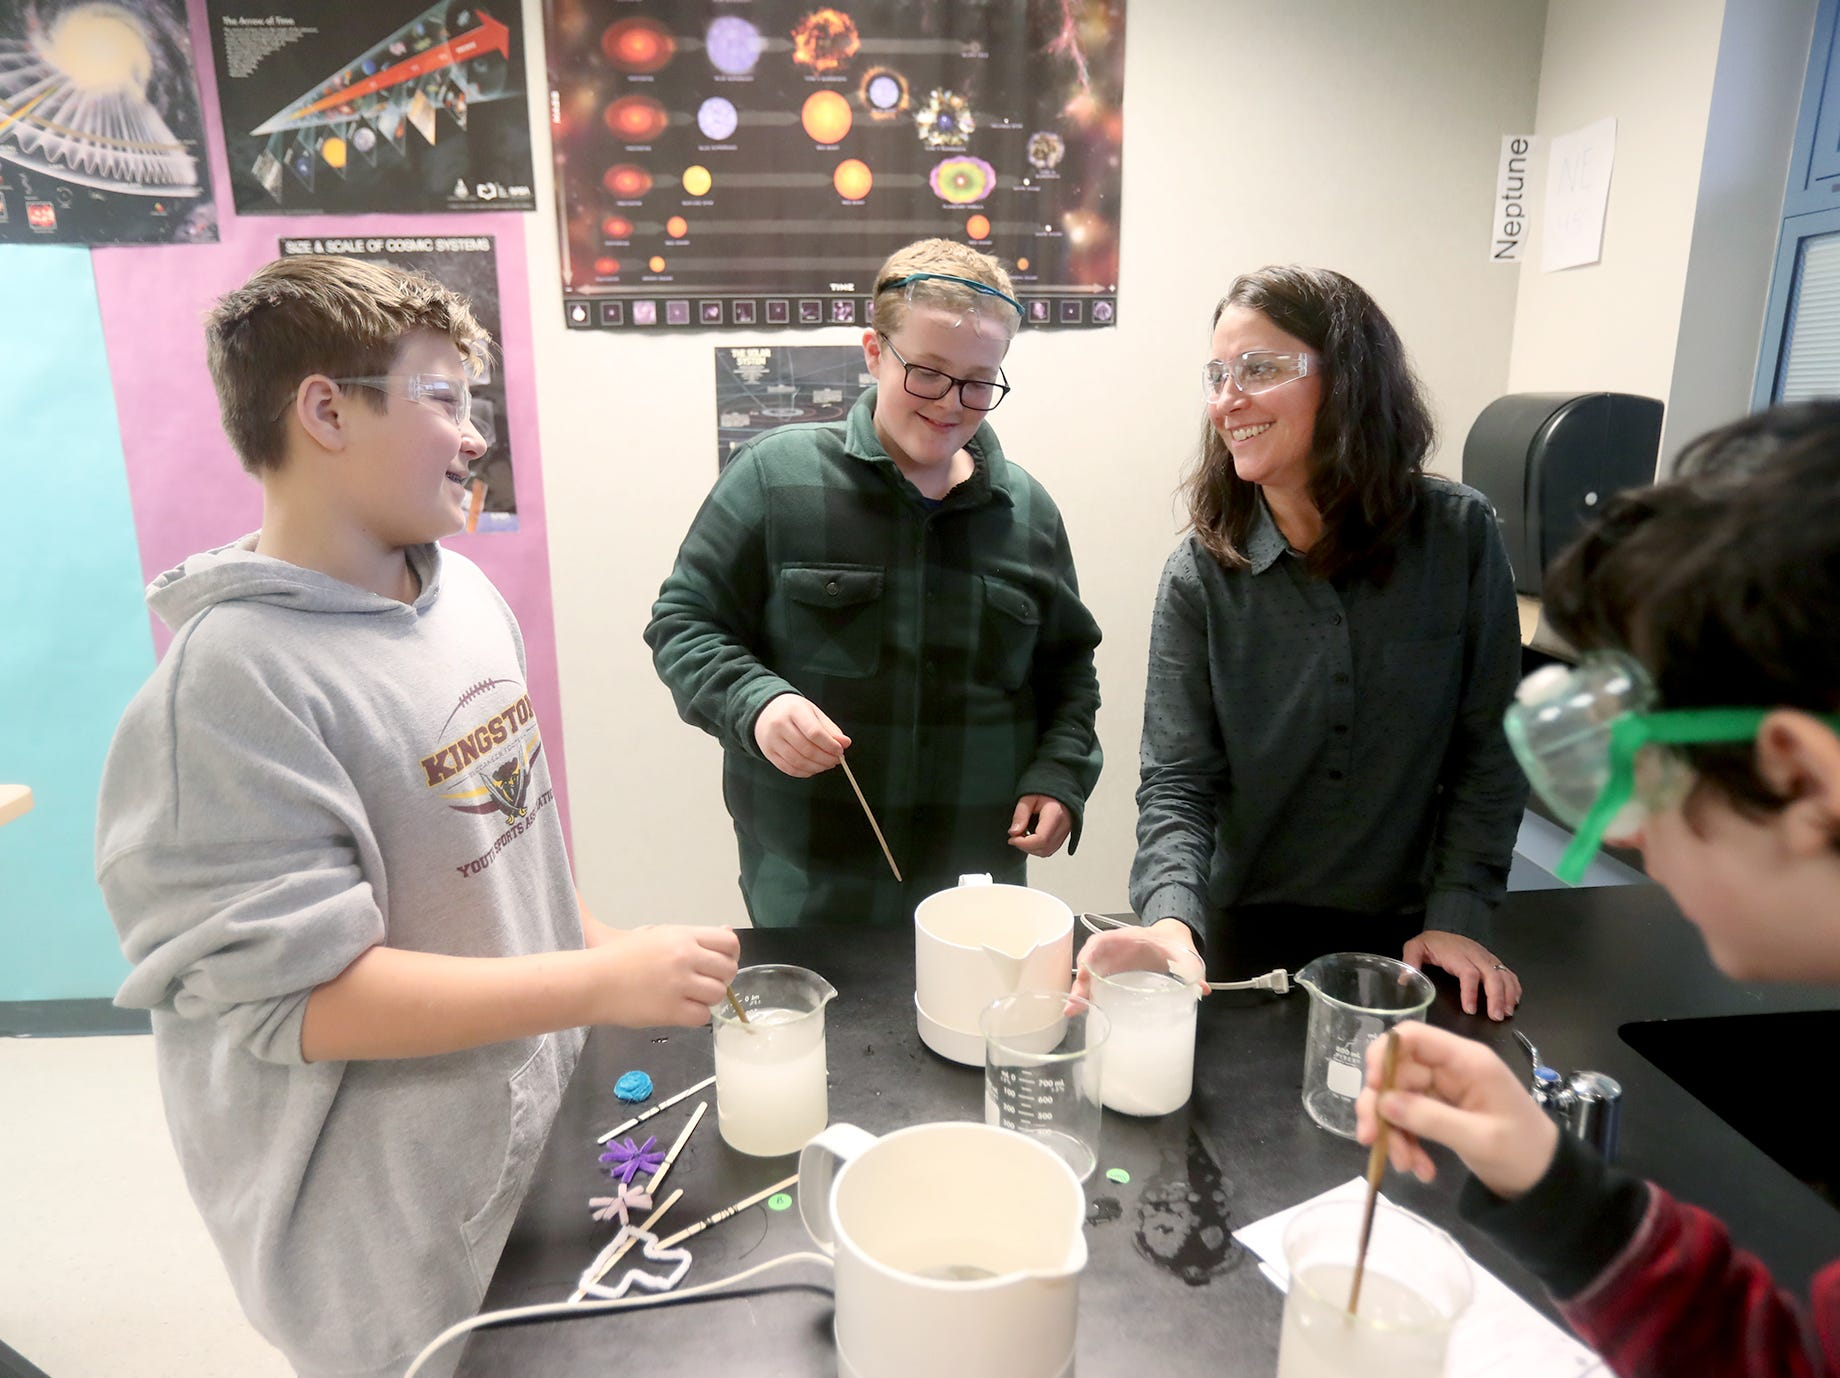 Karla Manuguid, top right, a science teacher at  Kingston Middle School works with students on making a snowflake, in class.